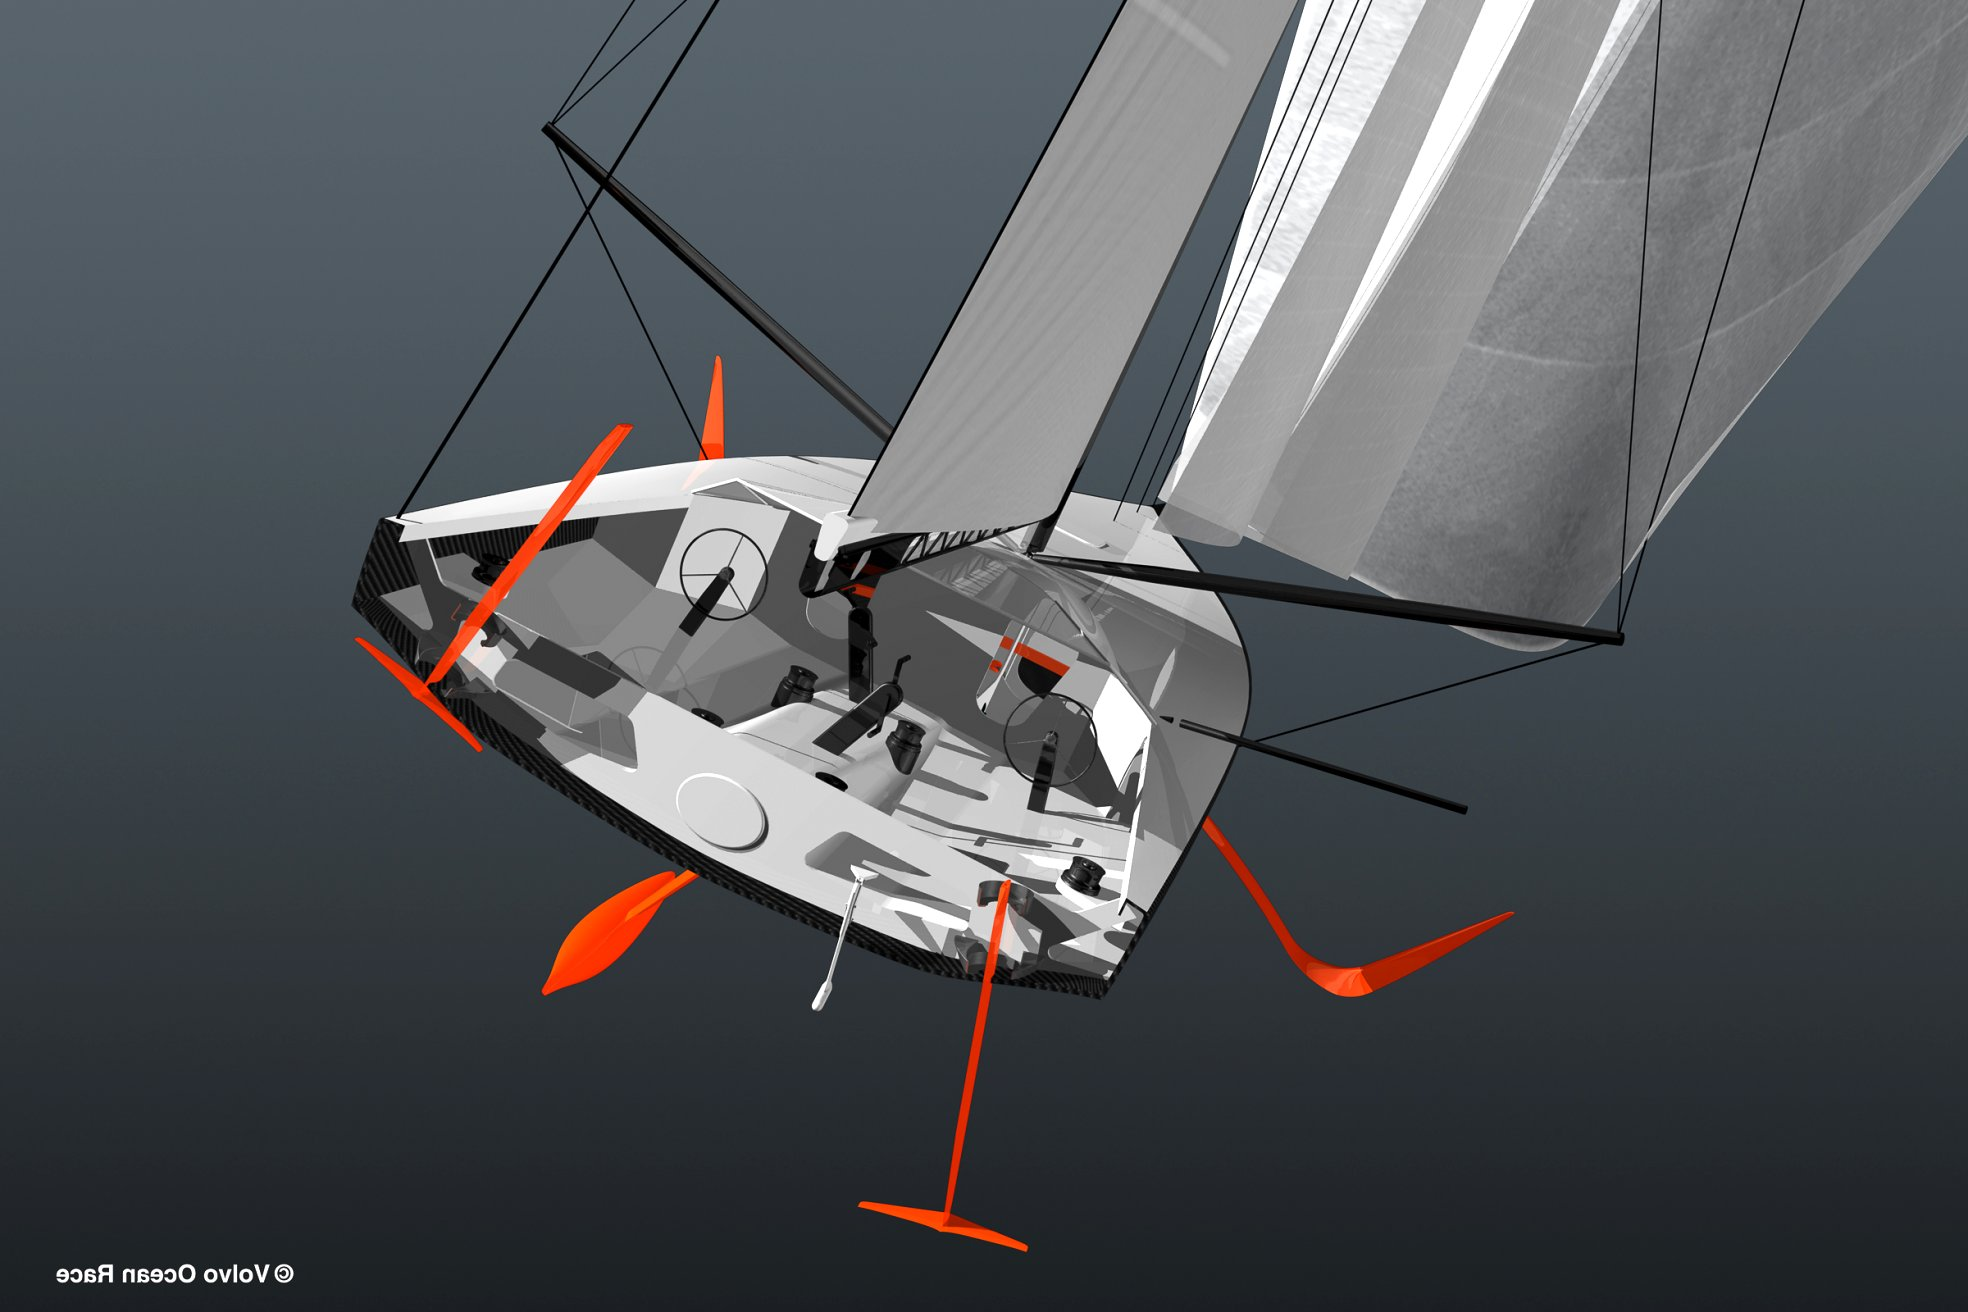 volvo yacht race 2020 Prices